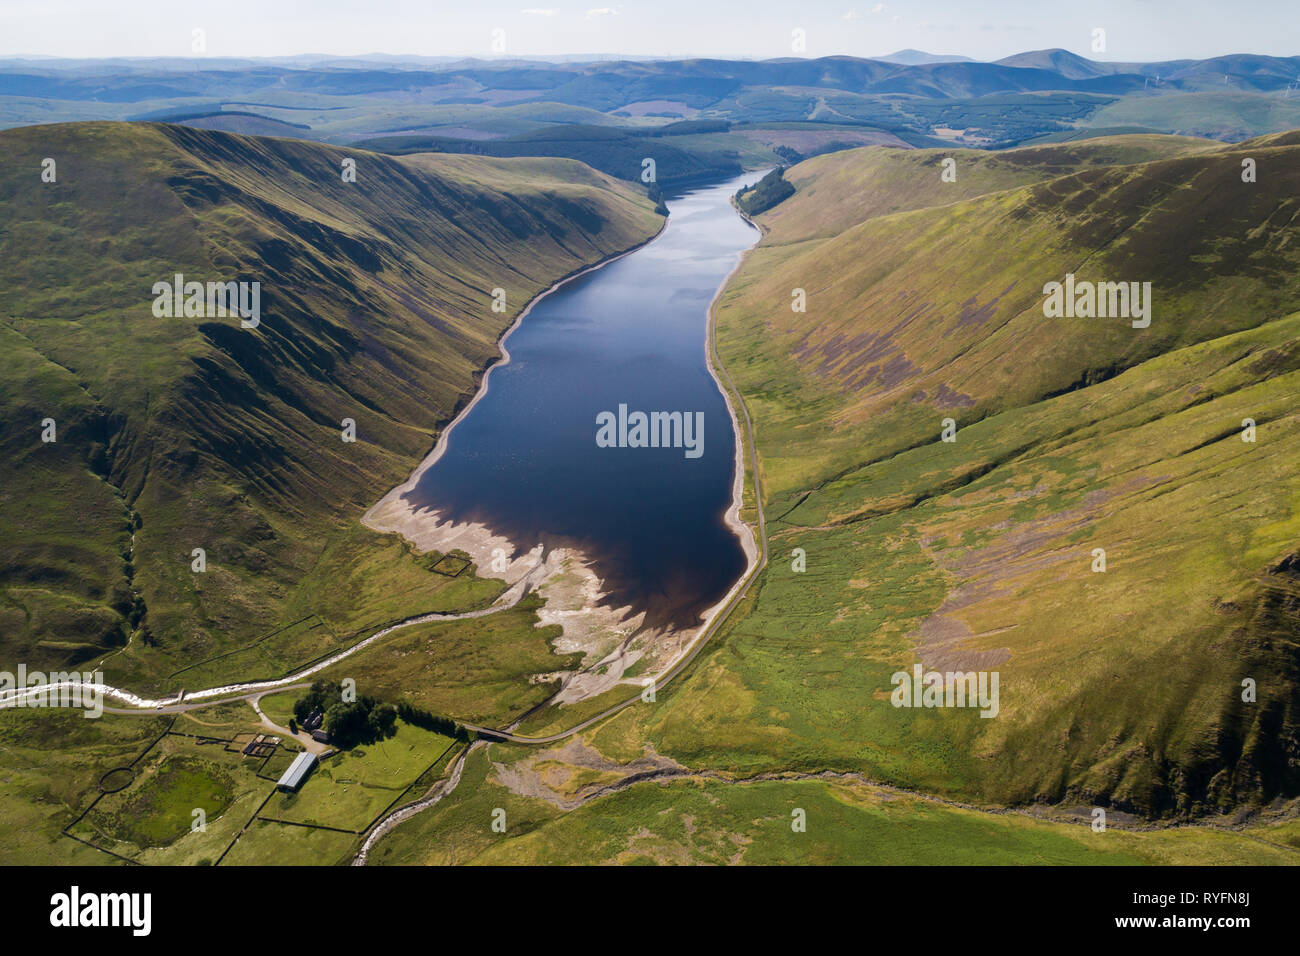 Aerial image of Talla Reservoir looking south towards distant Tinto Hill on a Summer afternoon. - Stock Image